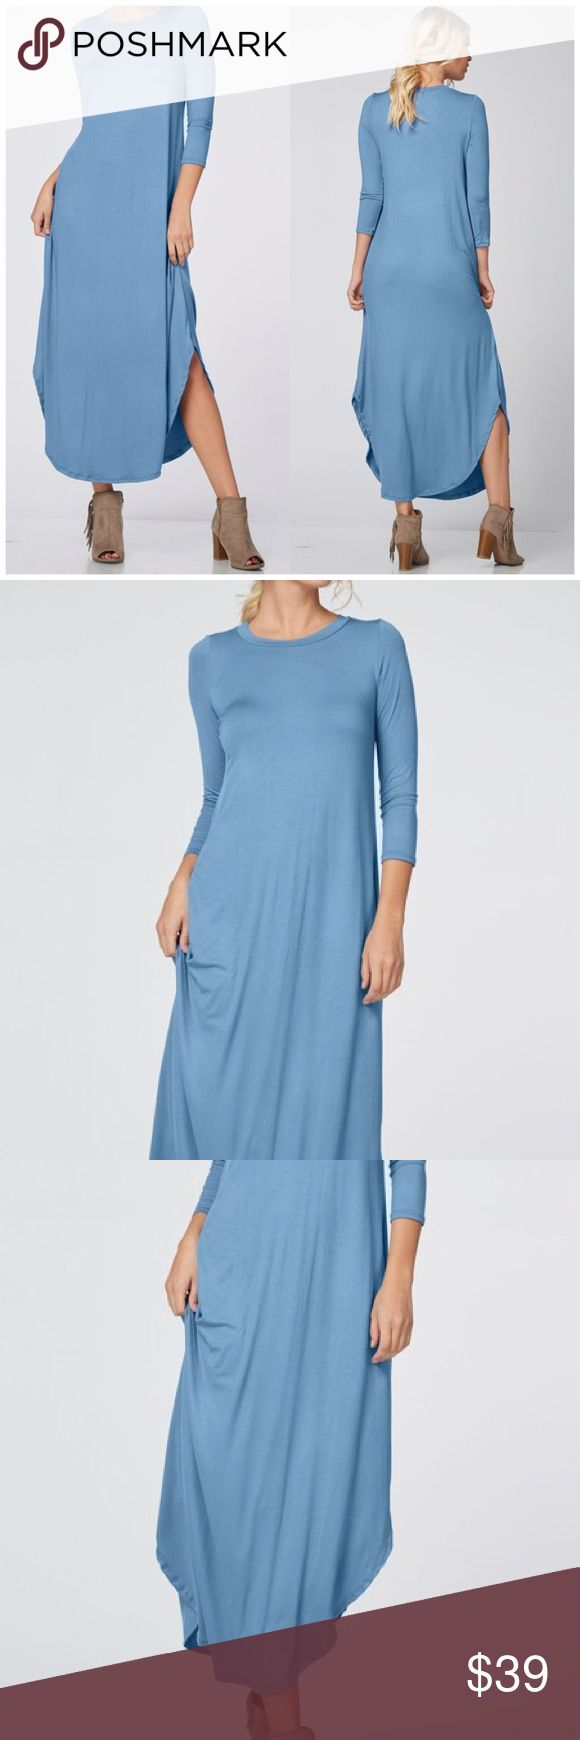 3/4 Sleeve Denim Blue Maxi Dress 3/4 Sleeve Denim blue Maxi Dress featuring a round neckline and hemline. 2 side slits for an added sexy touch. 95% Rayon 5% spandex. Fits true to size. Available in mauve also Bchic Dresses Maxi